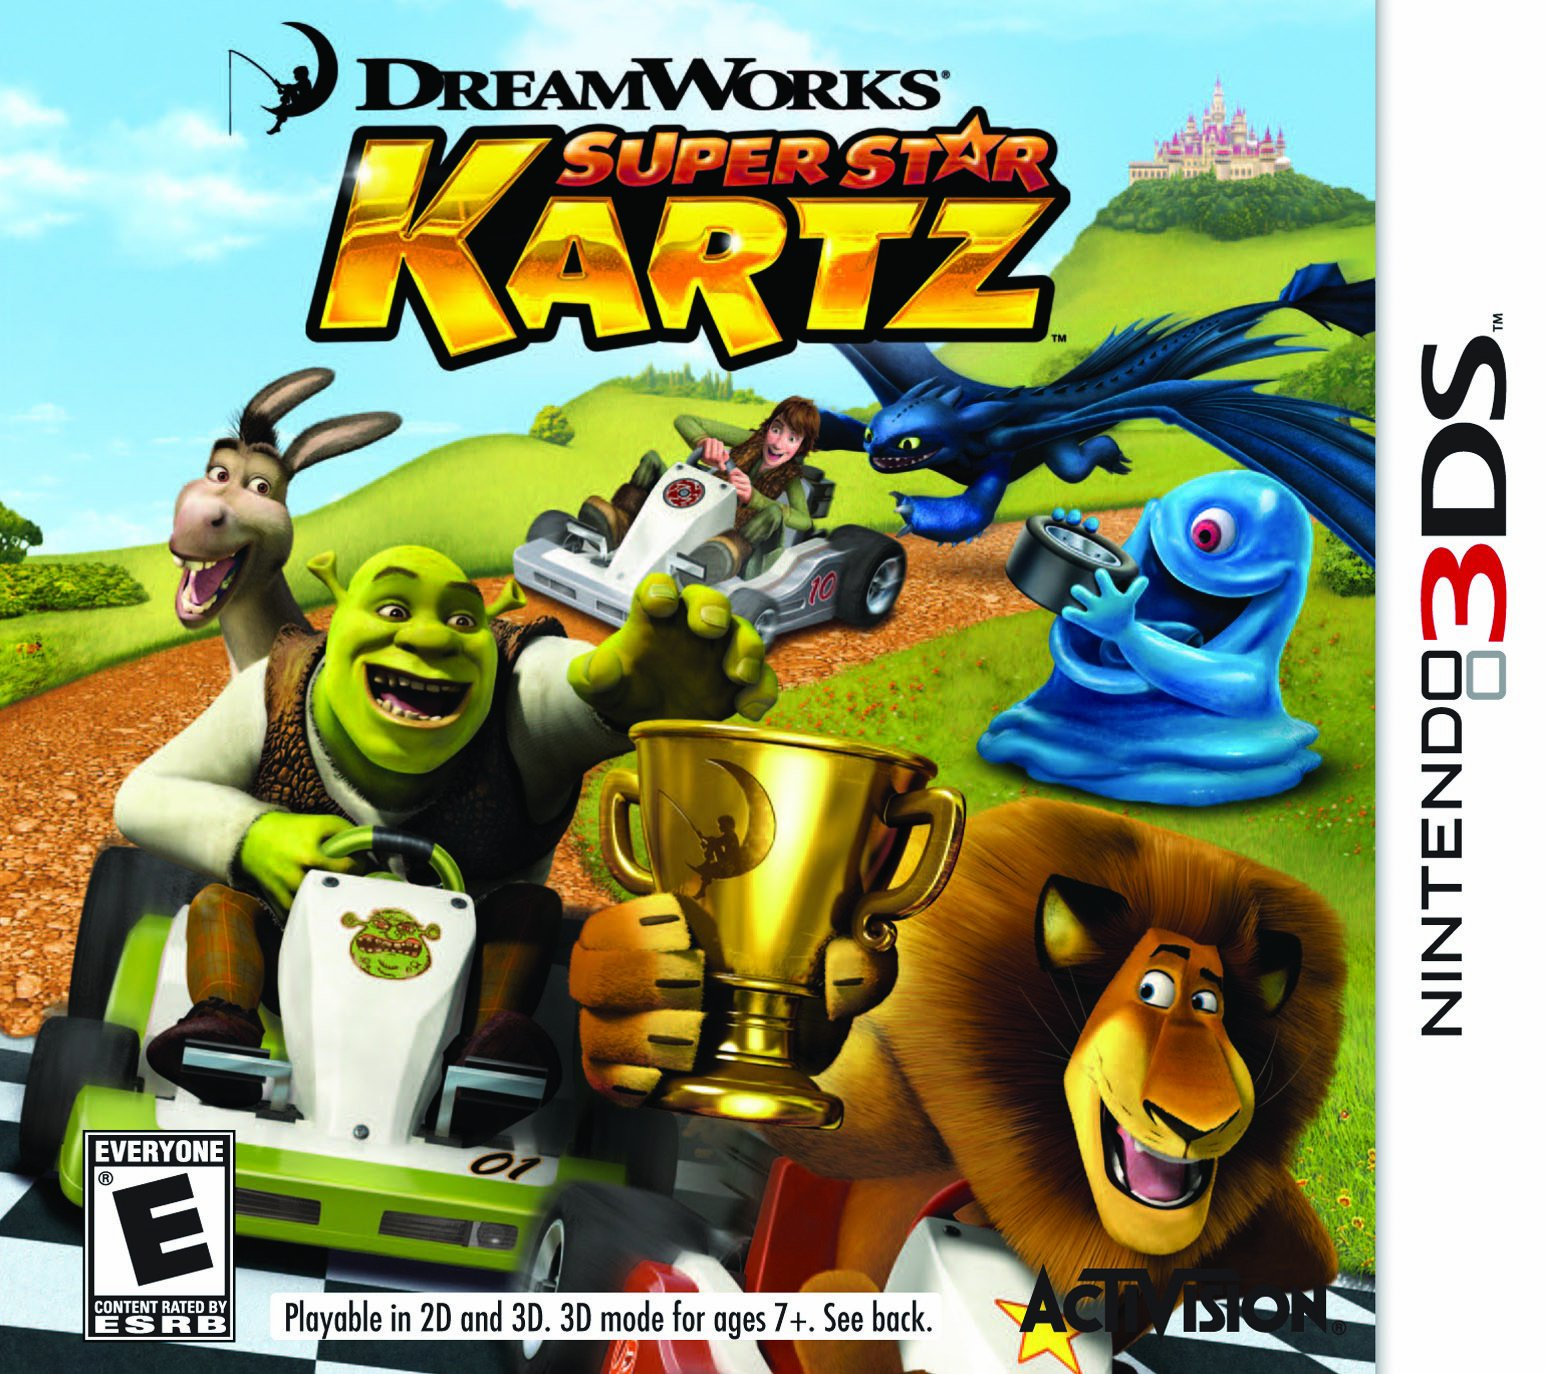 Dreamworks Super Star Kartz - Nintendo 3DS